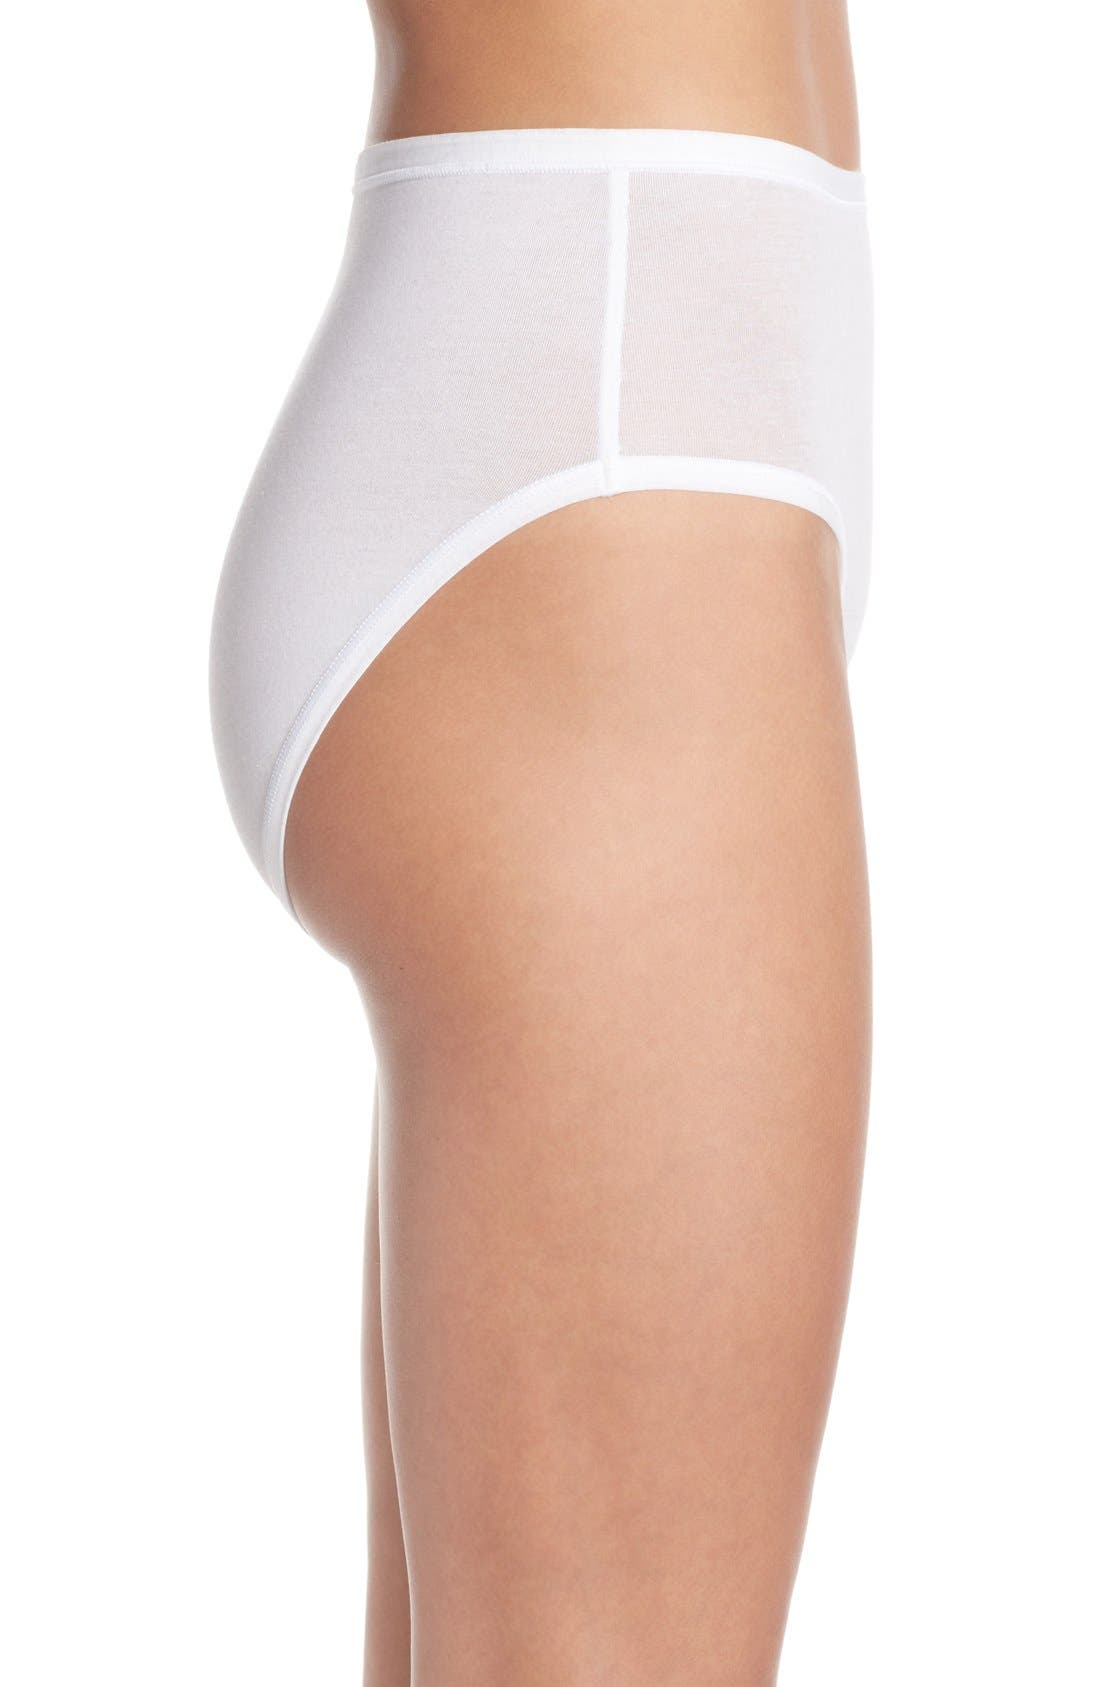 Alternate Image 3  - Wacoal B Fitting High Cut Briefs (3 for $28)